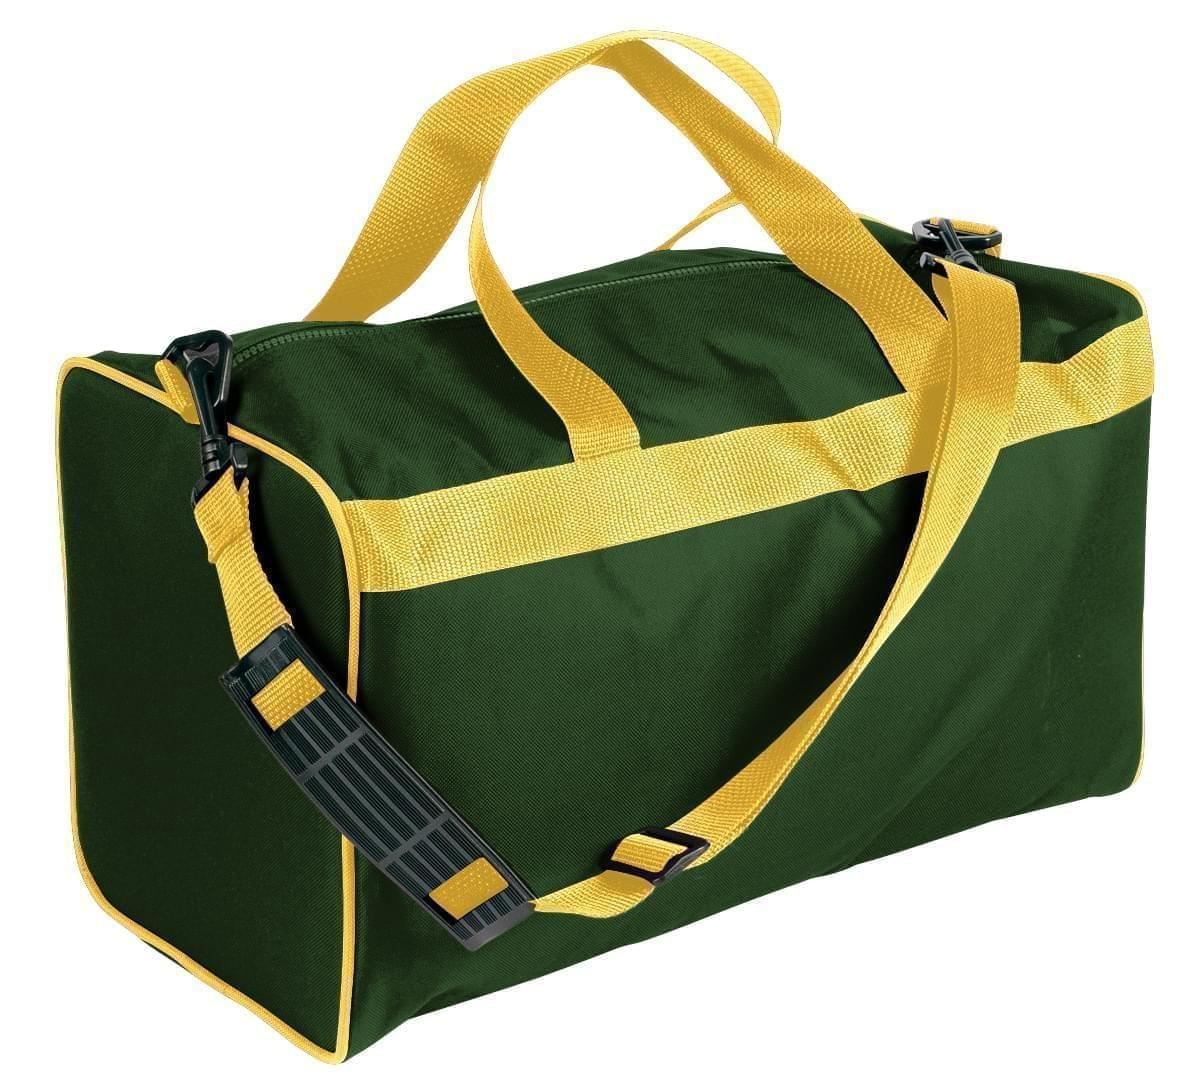 USA Made Nylon Poly Weekend Duffles, Hunter Green-Gold, WLKX31AAS5